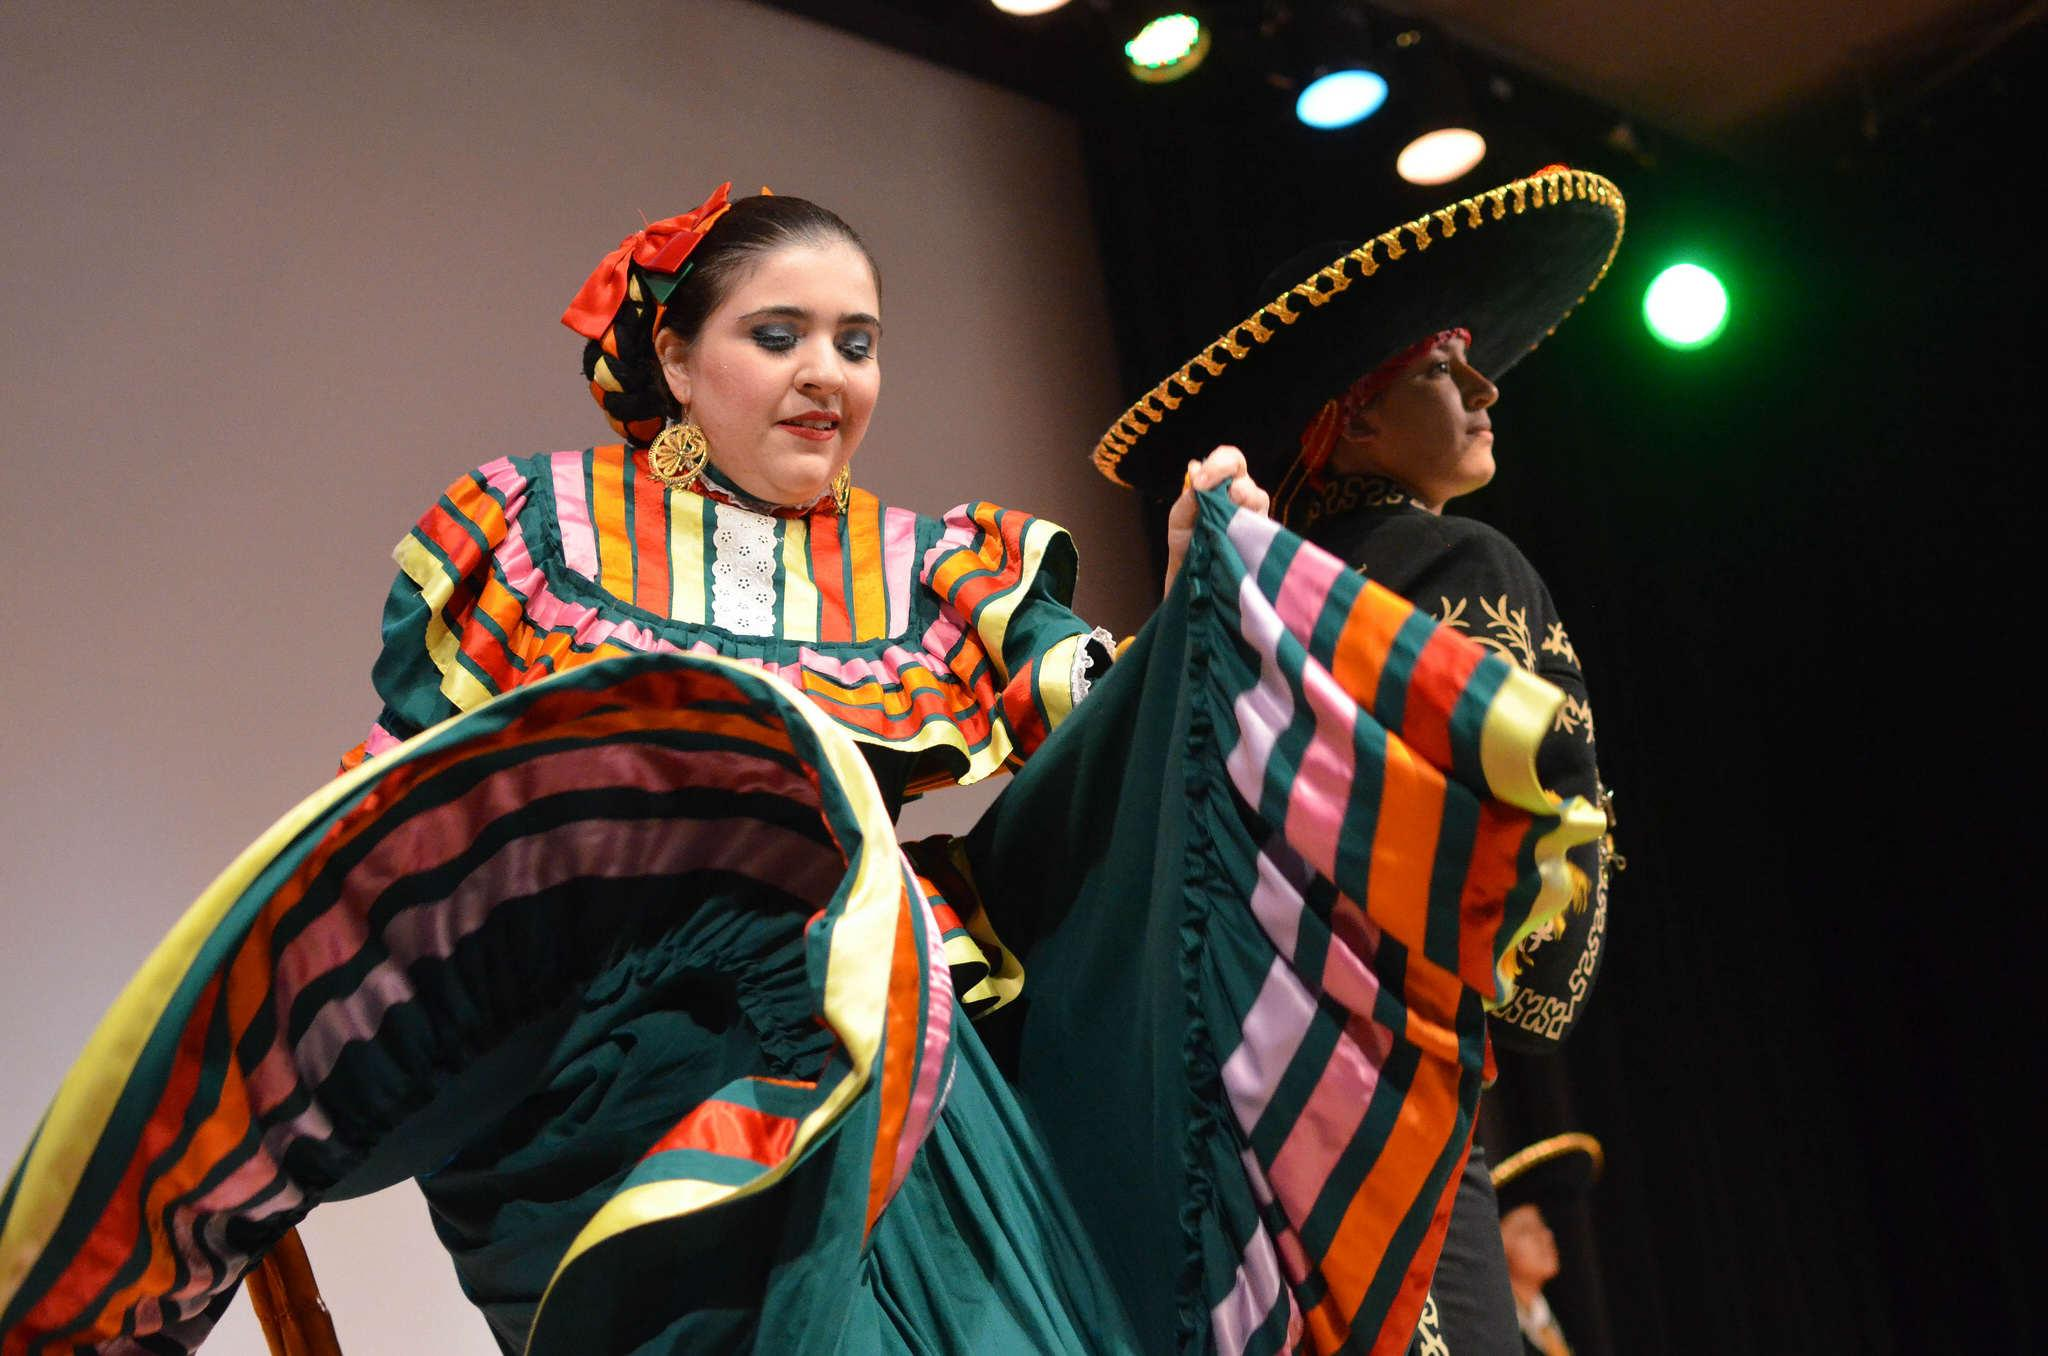 Grupo Folklórico Los Mejicas perform at the 4th Annual Associated Students Women's Conference: Empowered Women Empower Women at Jack Adams Hall Saturday, March 14. (Melissa Minton / Xpress)